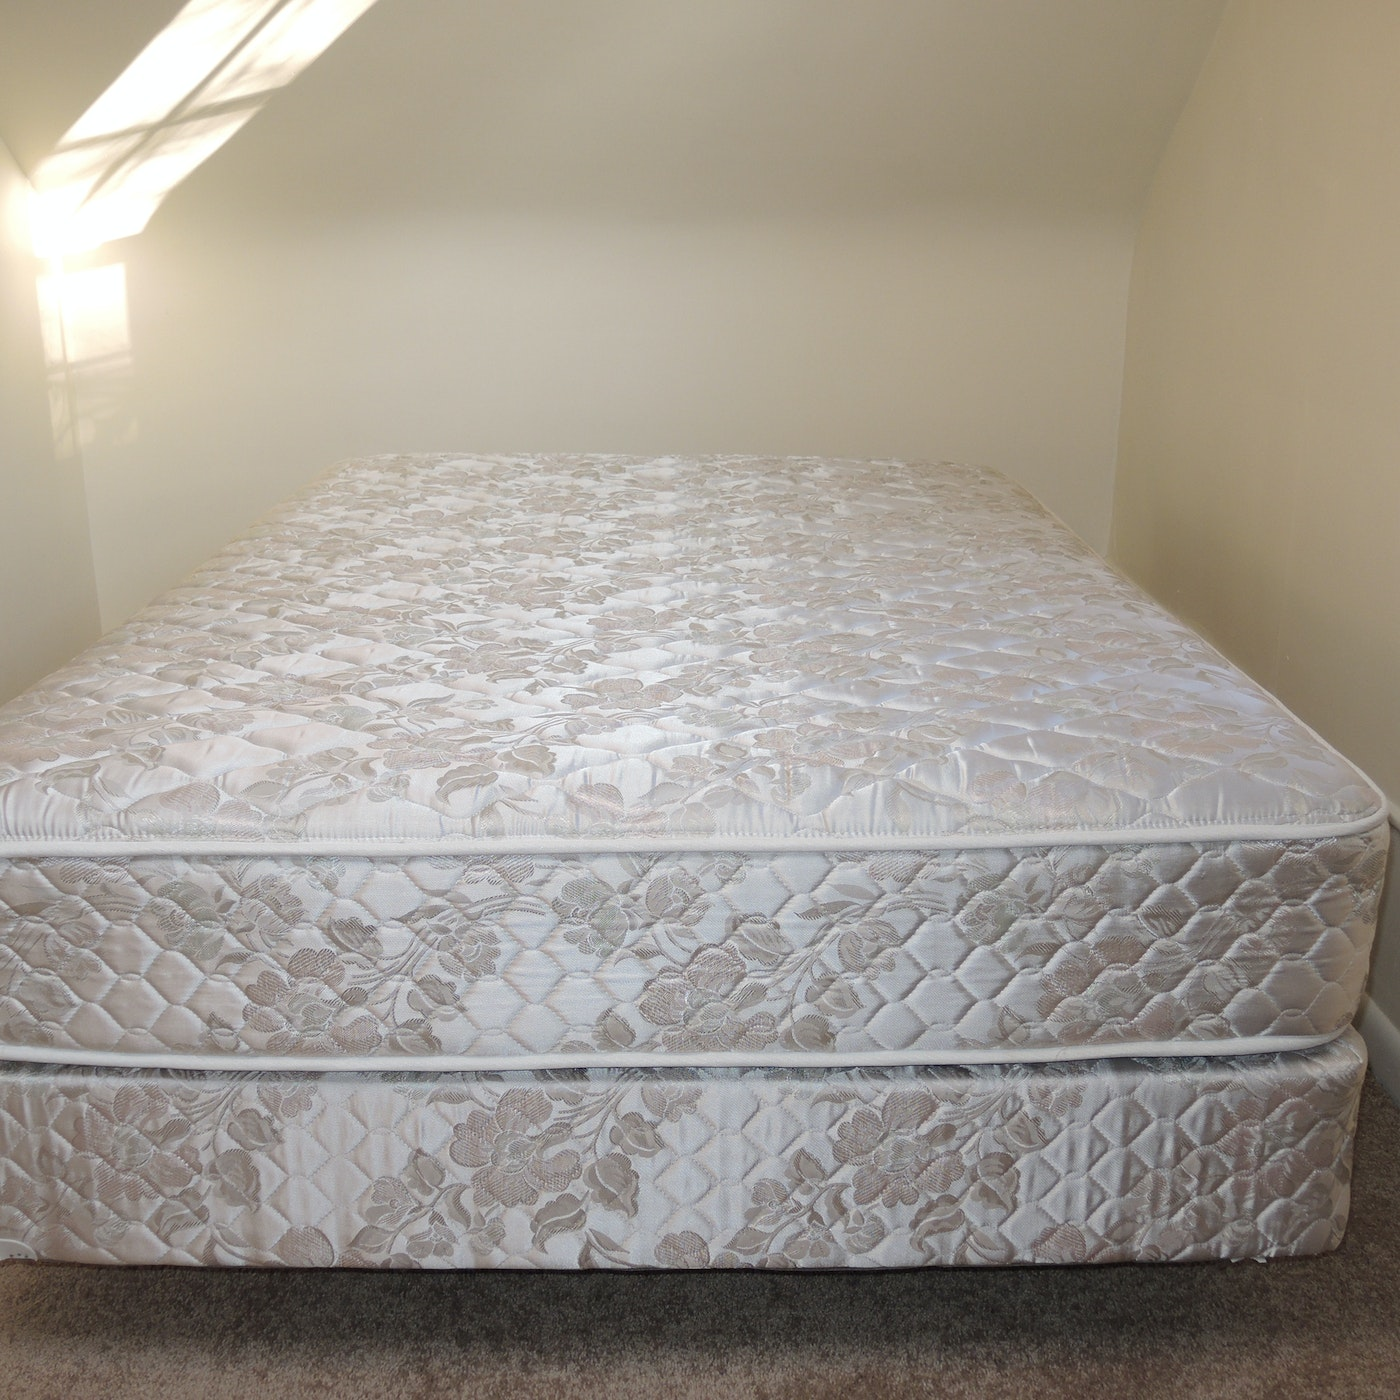 Full Size Mattress and Box Springs Set with Bed Frame | EBTH